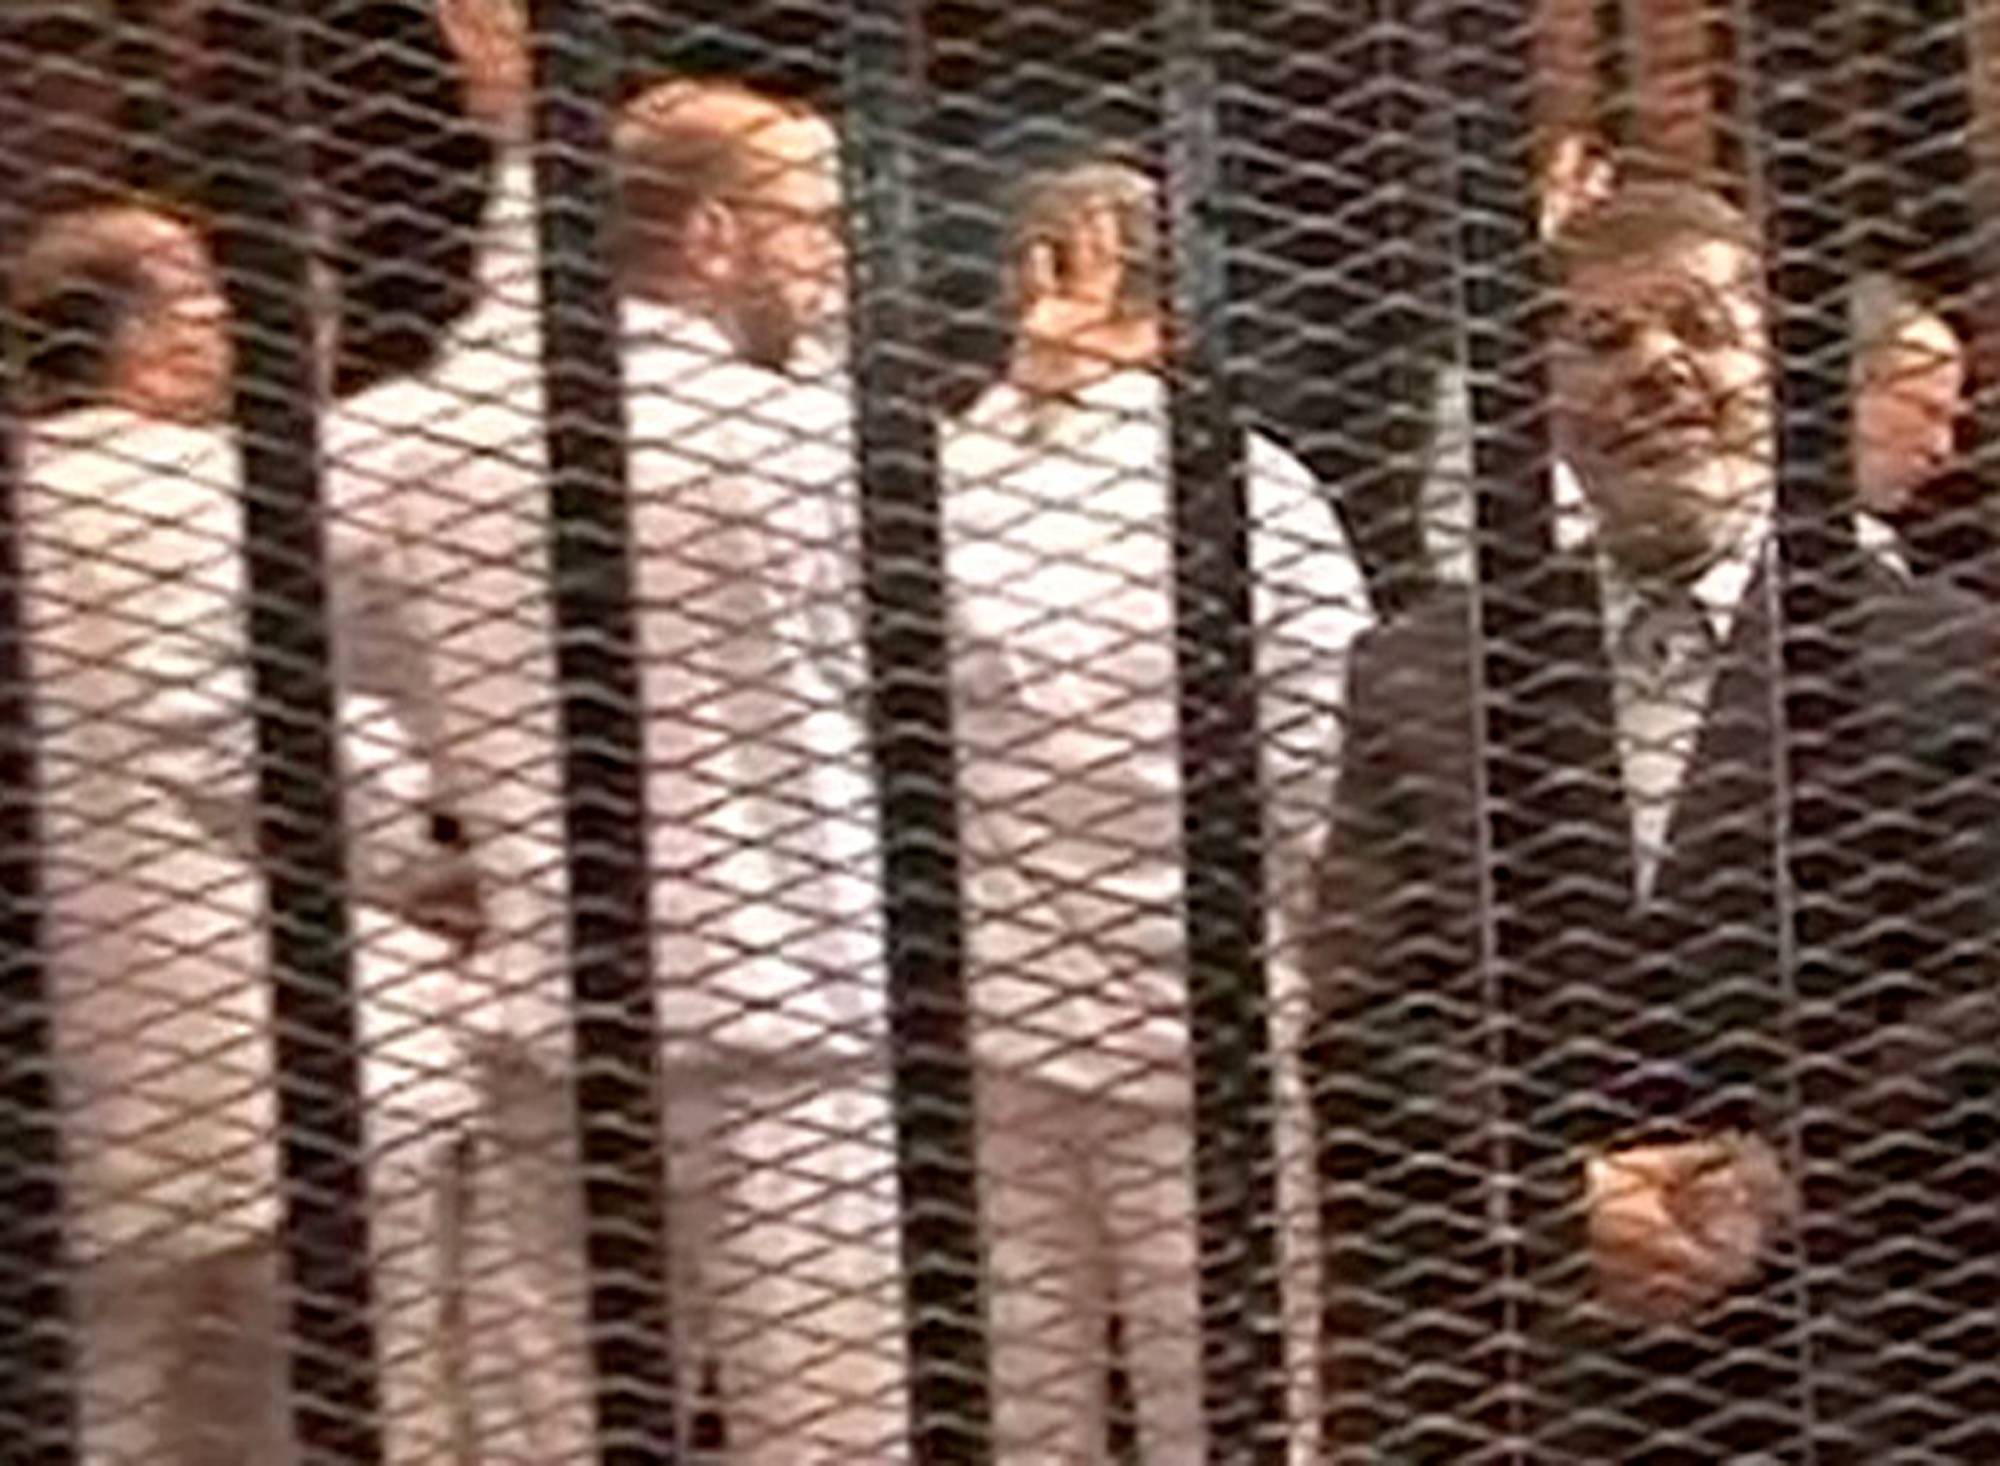 Ousted President Mohammed Morsi, right, is seen speaking from the defendant's cage as he stands with co-defendants in a makeshift courtroom during a trial hearing in Cairo, Egypt, in November 2013. Egypt's crackdown on Islamists has jailed 16,000 people over the past eight months in the country's biggest round-up in nearly two decades, according to previously unreleased figures from security officials.